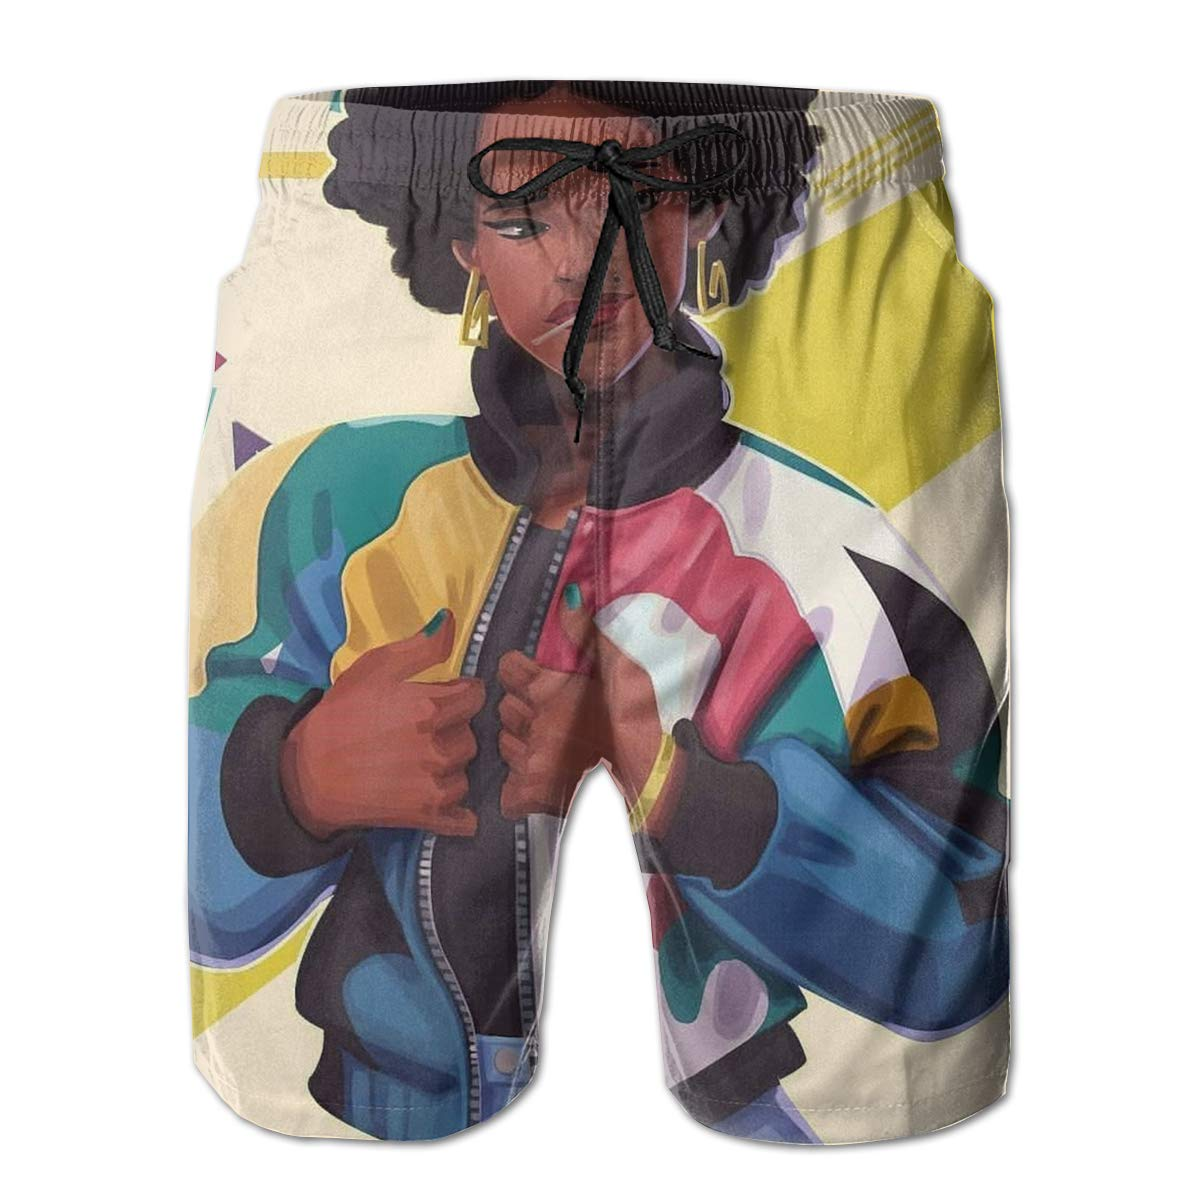 BE6h Mens Summer Surf Board Shorts Quick Dry Pants with Pockets for Mans